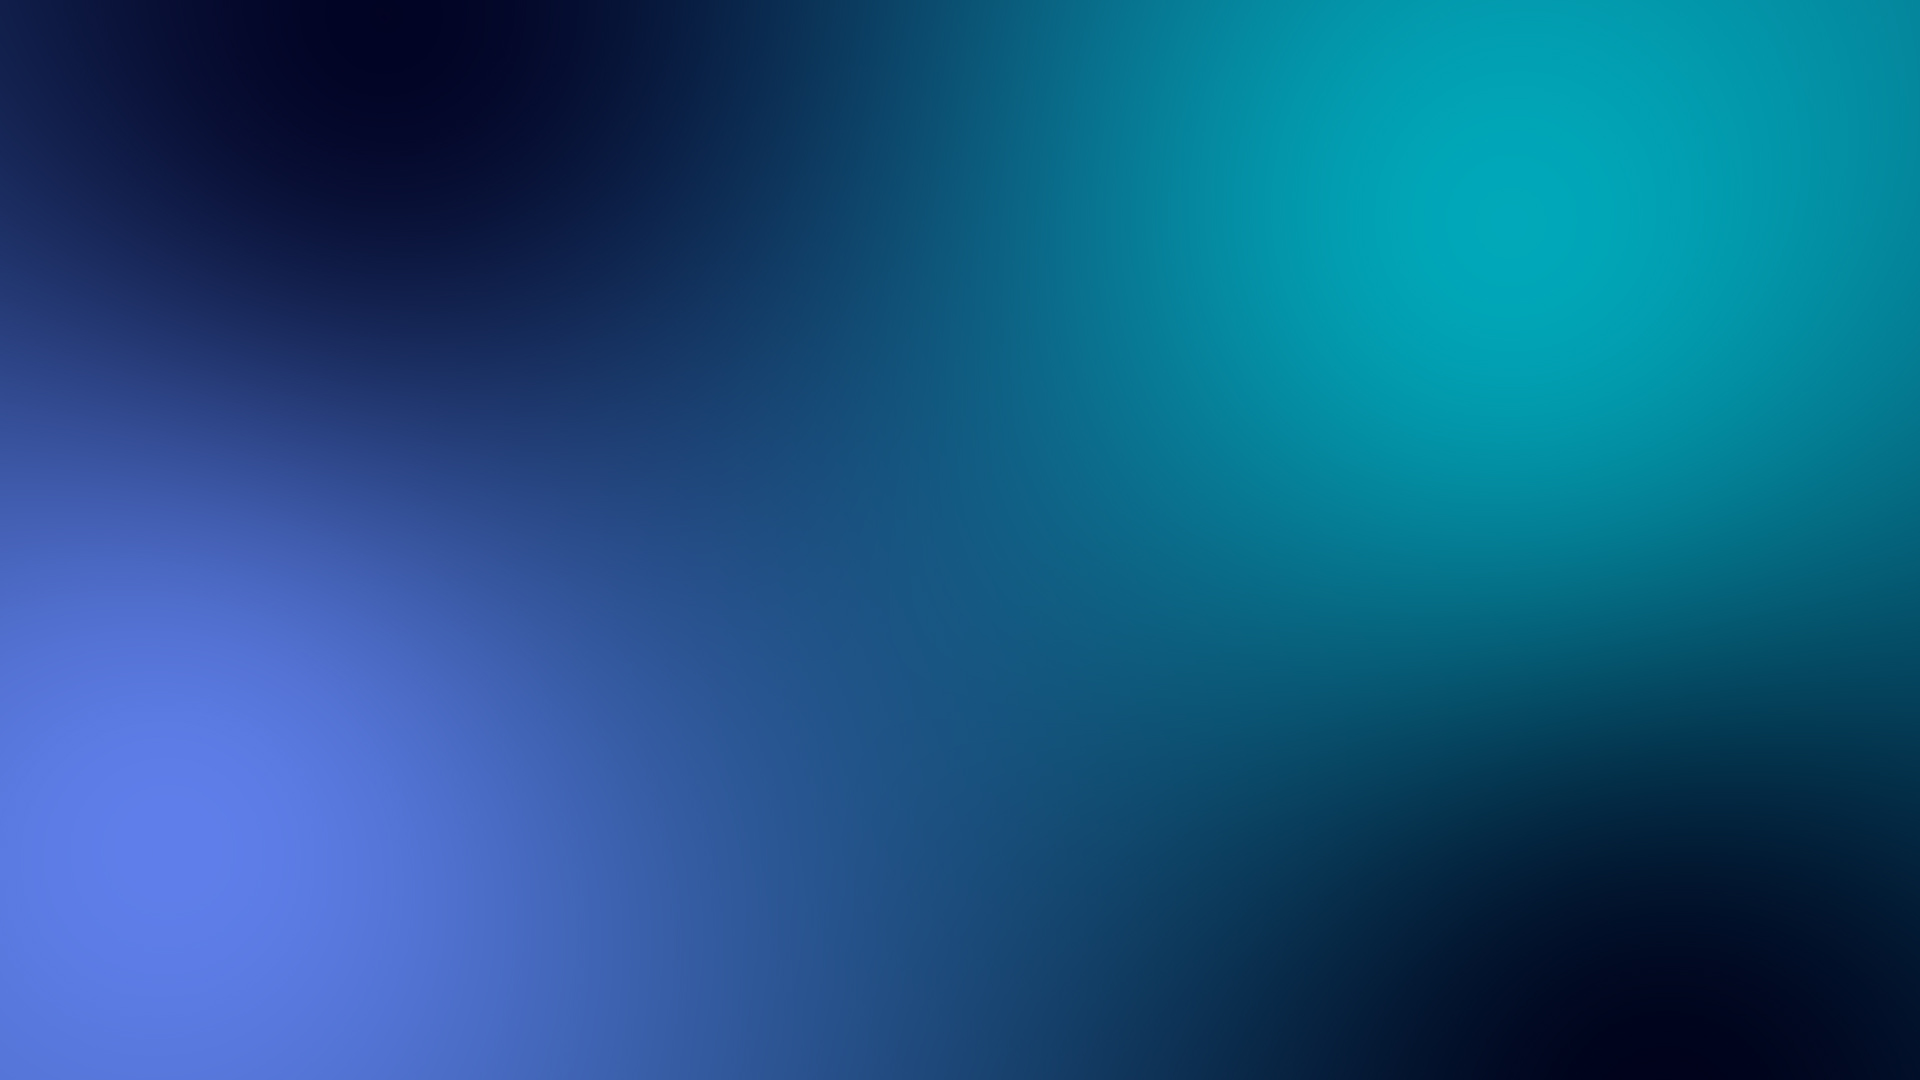 Static colourful gradient image